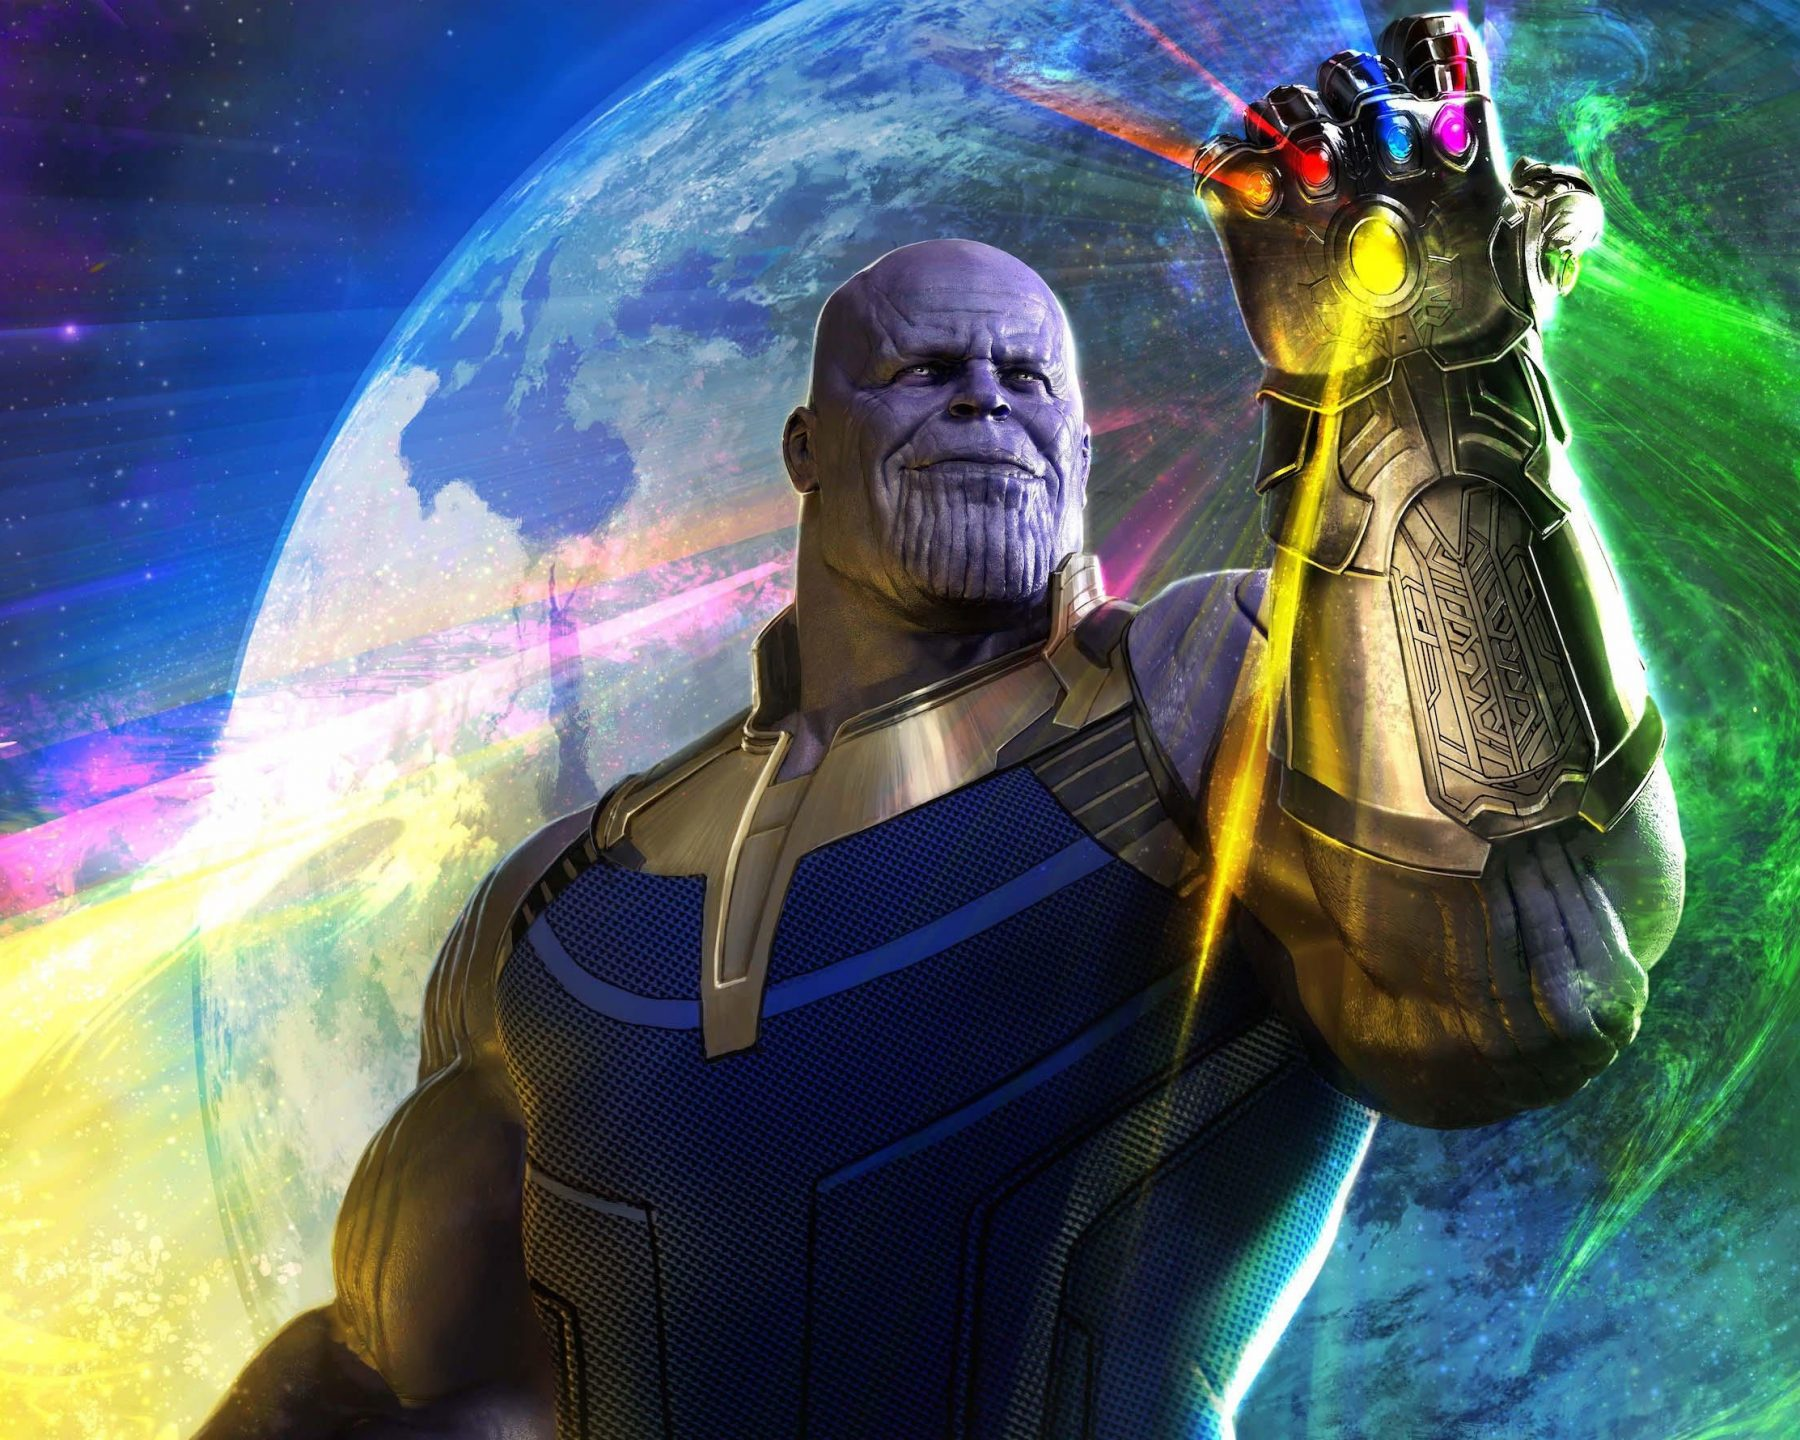 Thanos Hd Wallpaper: Avengers: Infinity War (2018) Thanos HD Wallpaper HD Wallpaper